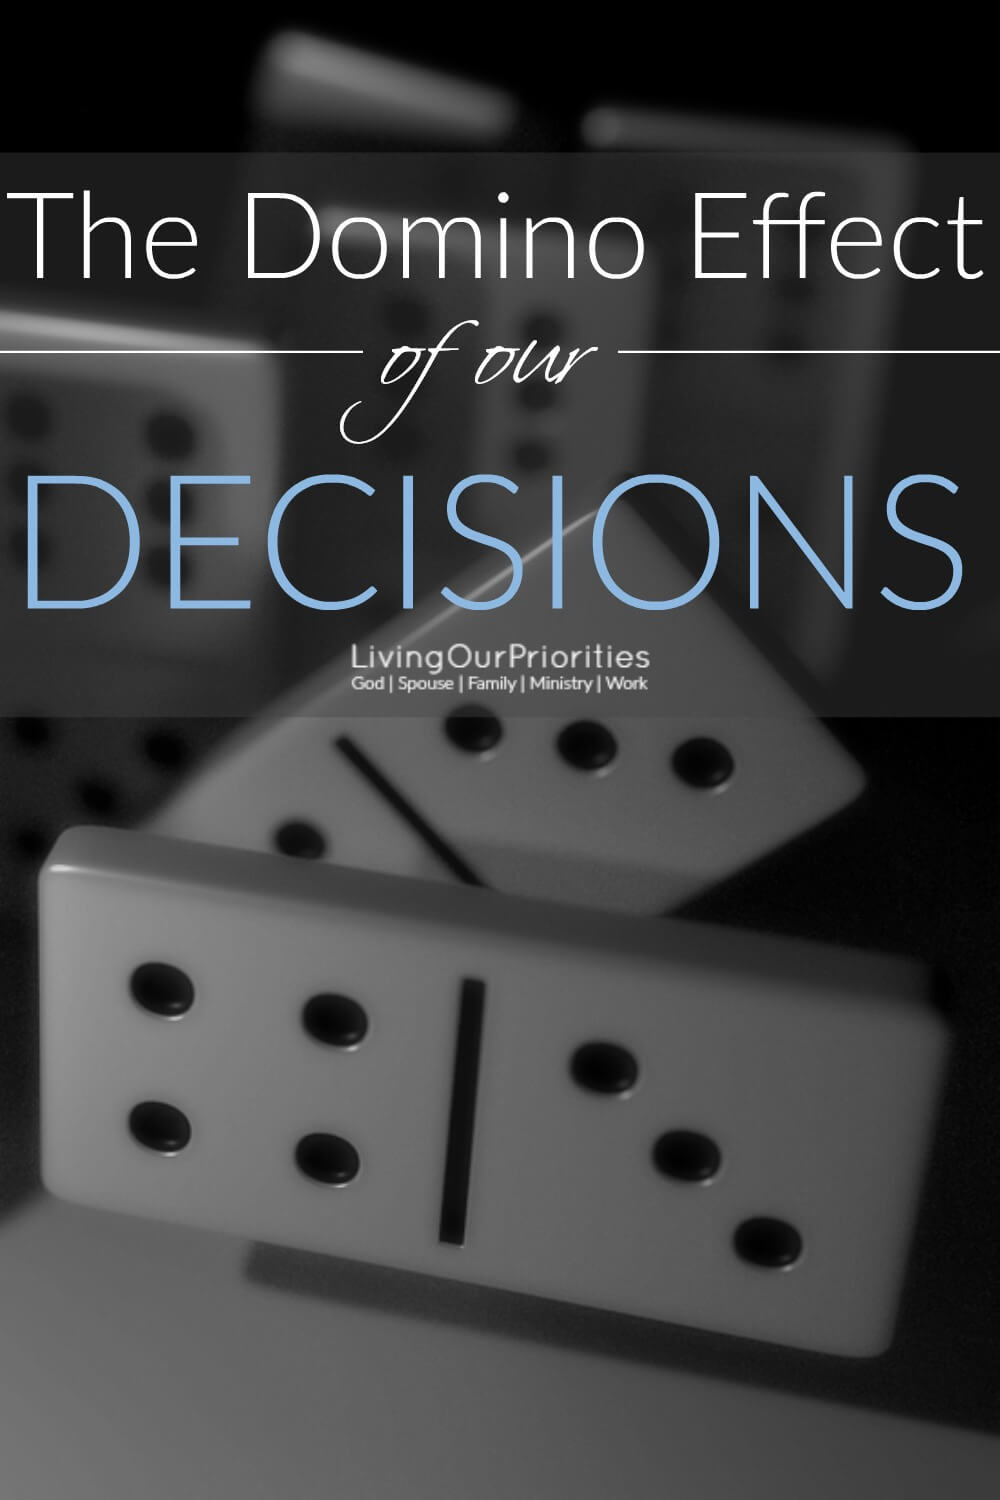 Have you considered the domino effect of your decisions? The truth is, our decisions have a domino effect not just in our lives but in the lives of others. However, this effect can be minimized when we learn how to say no to the good for the sake of the better.